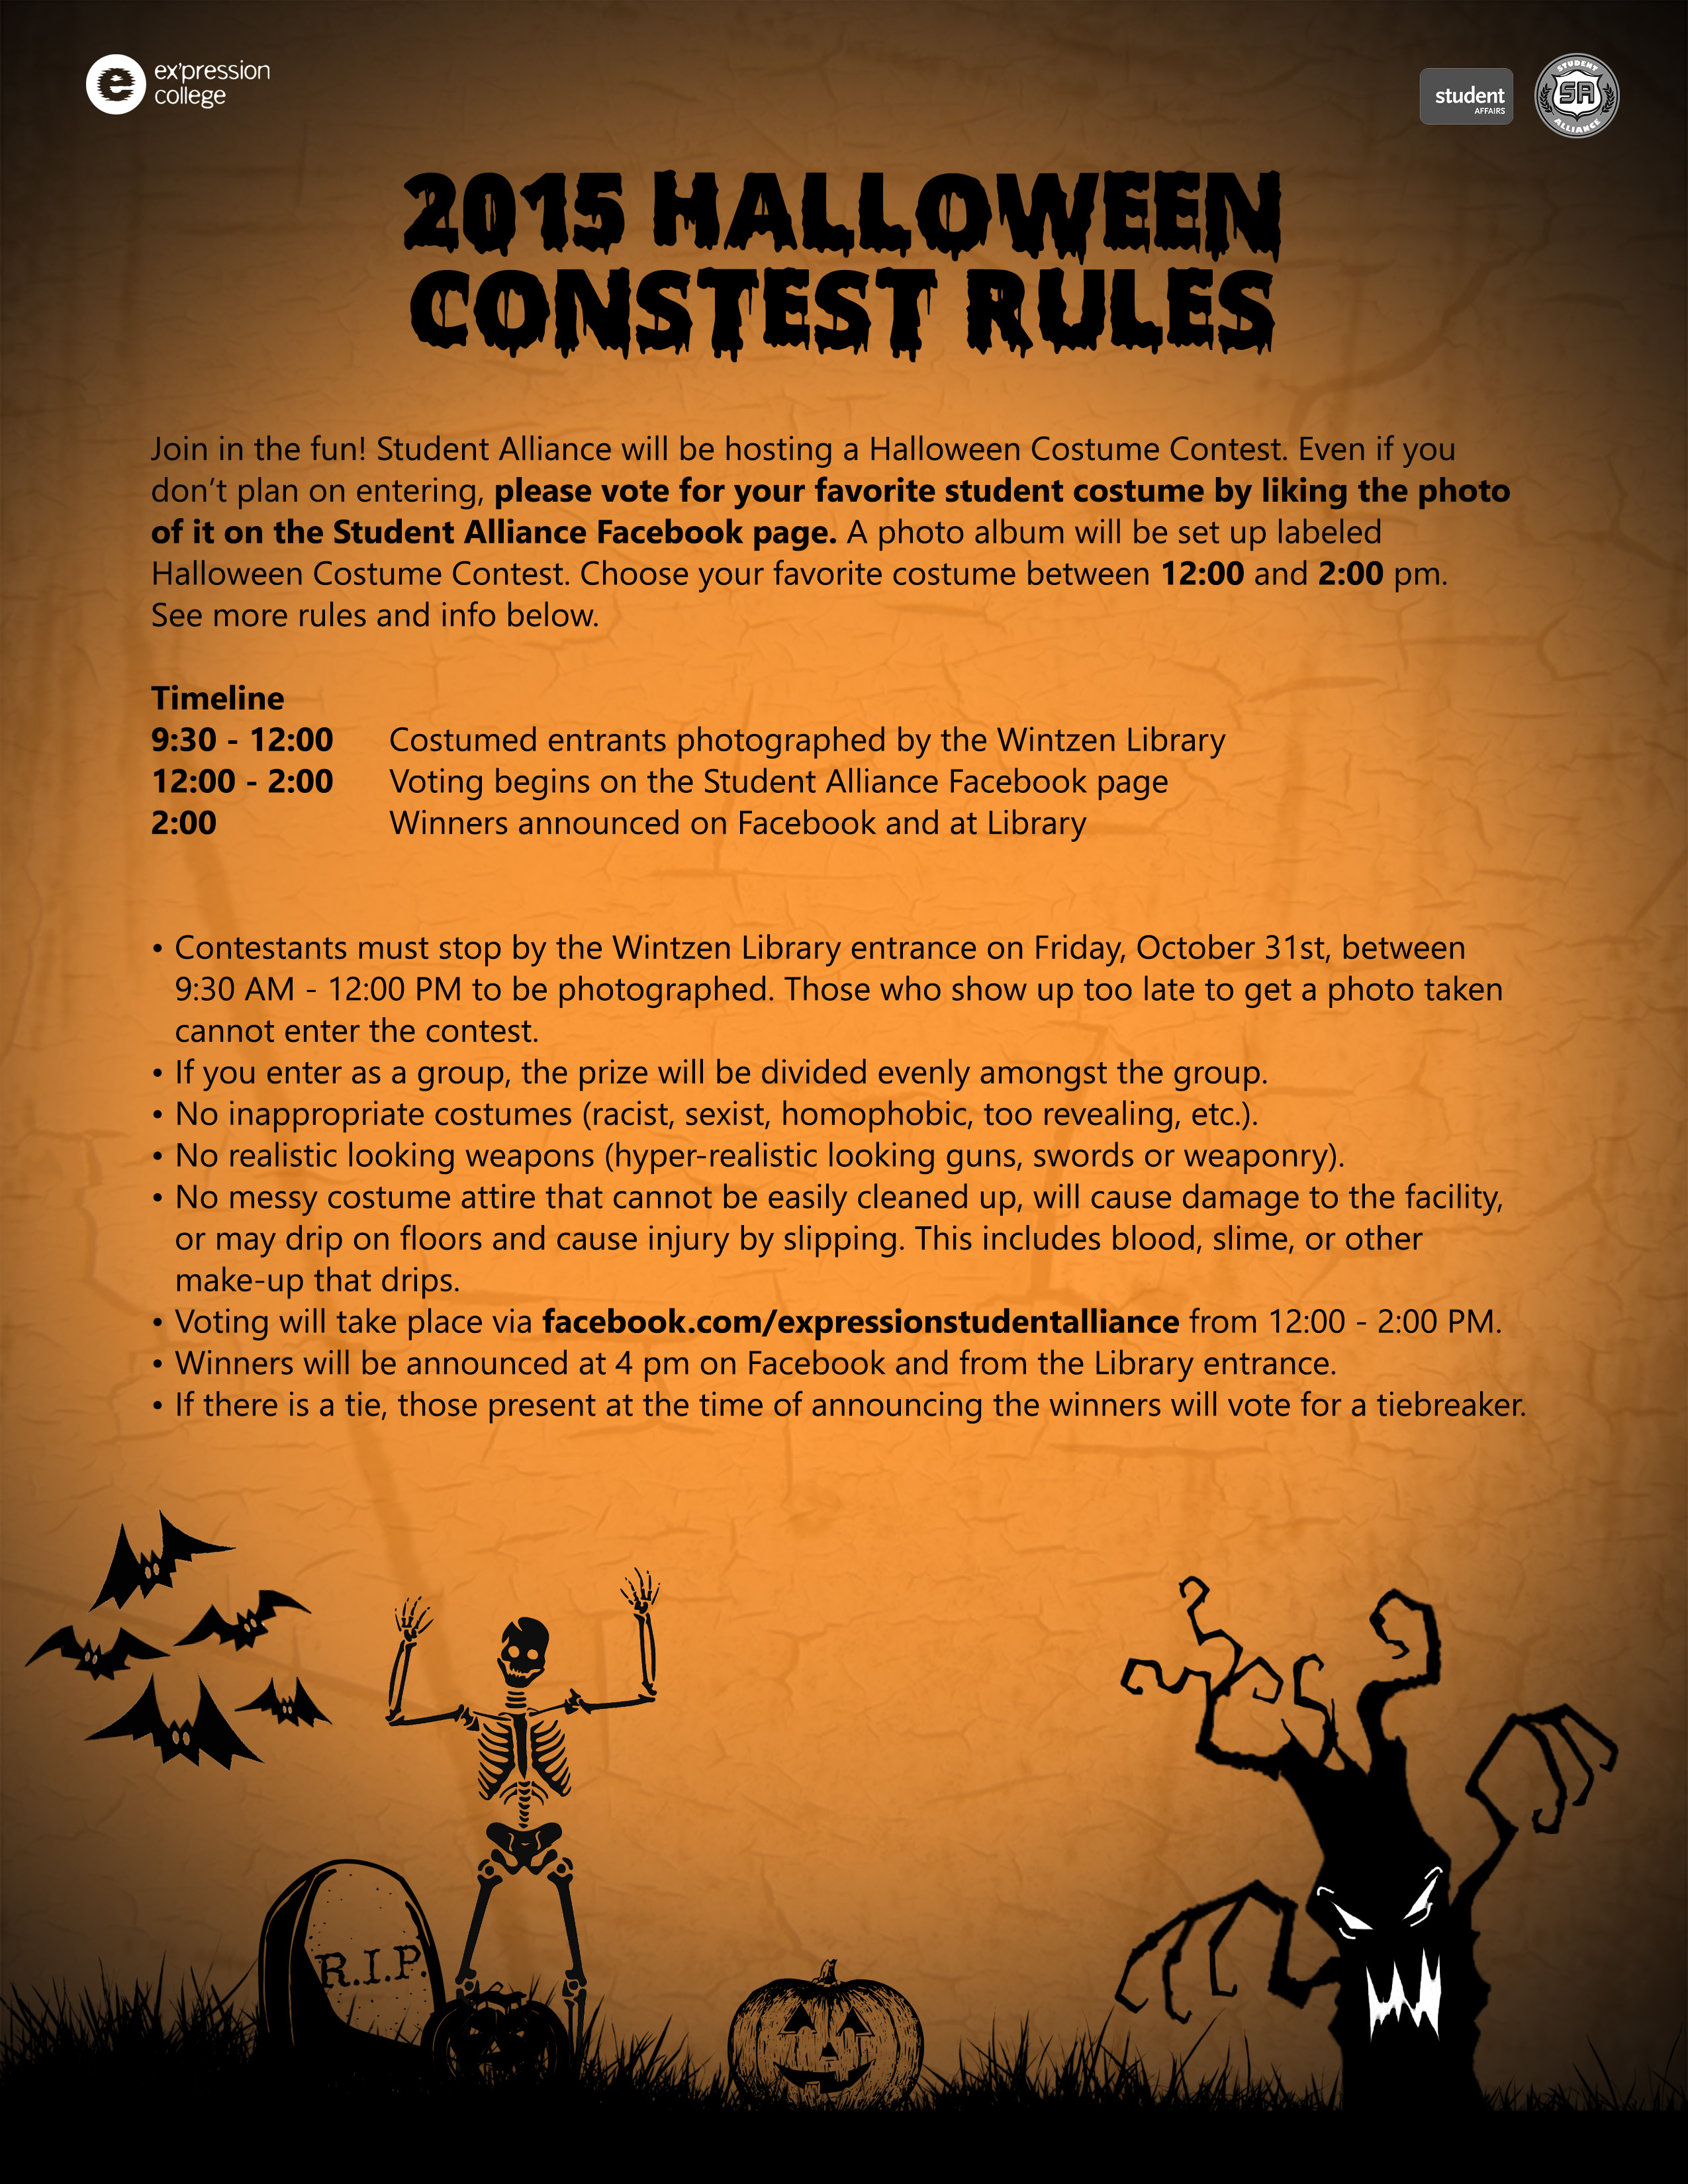 costume_contest_rules